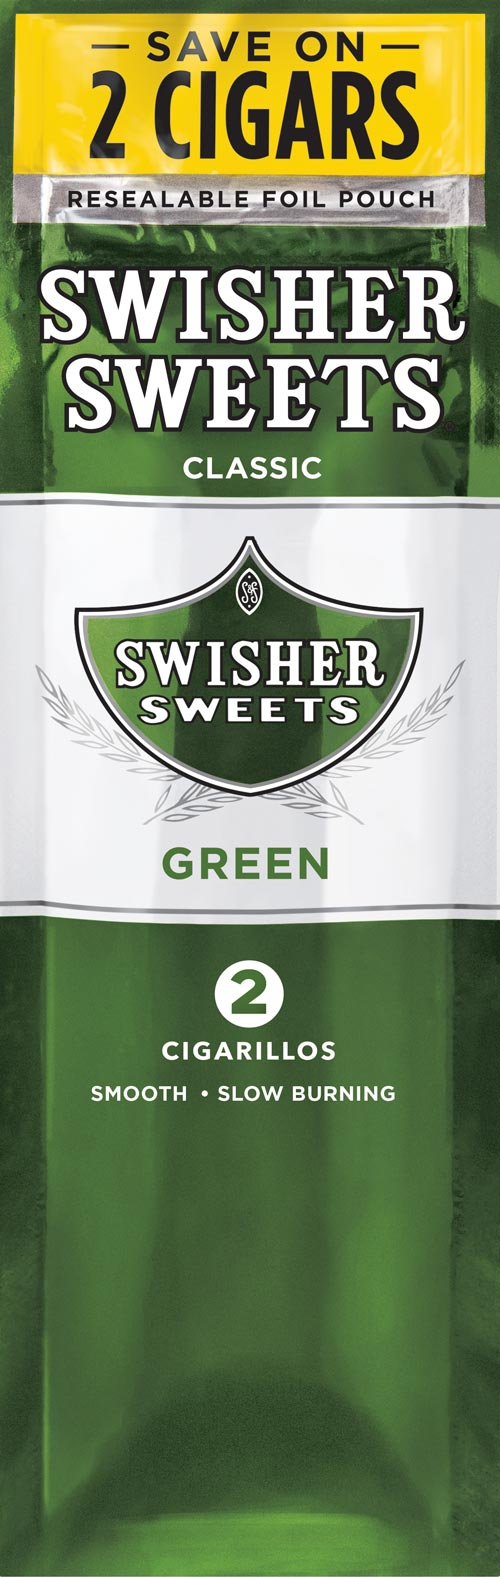 Swisher Sweets Cigarillos - Green Sweets